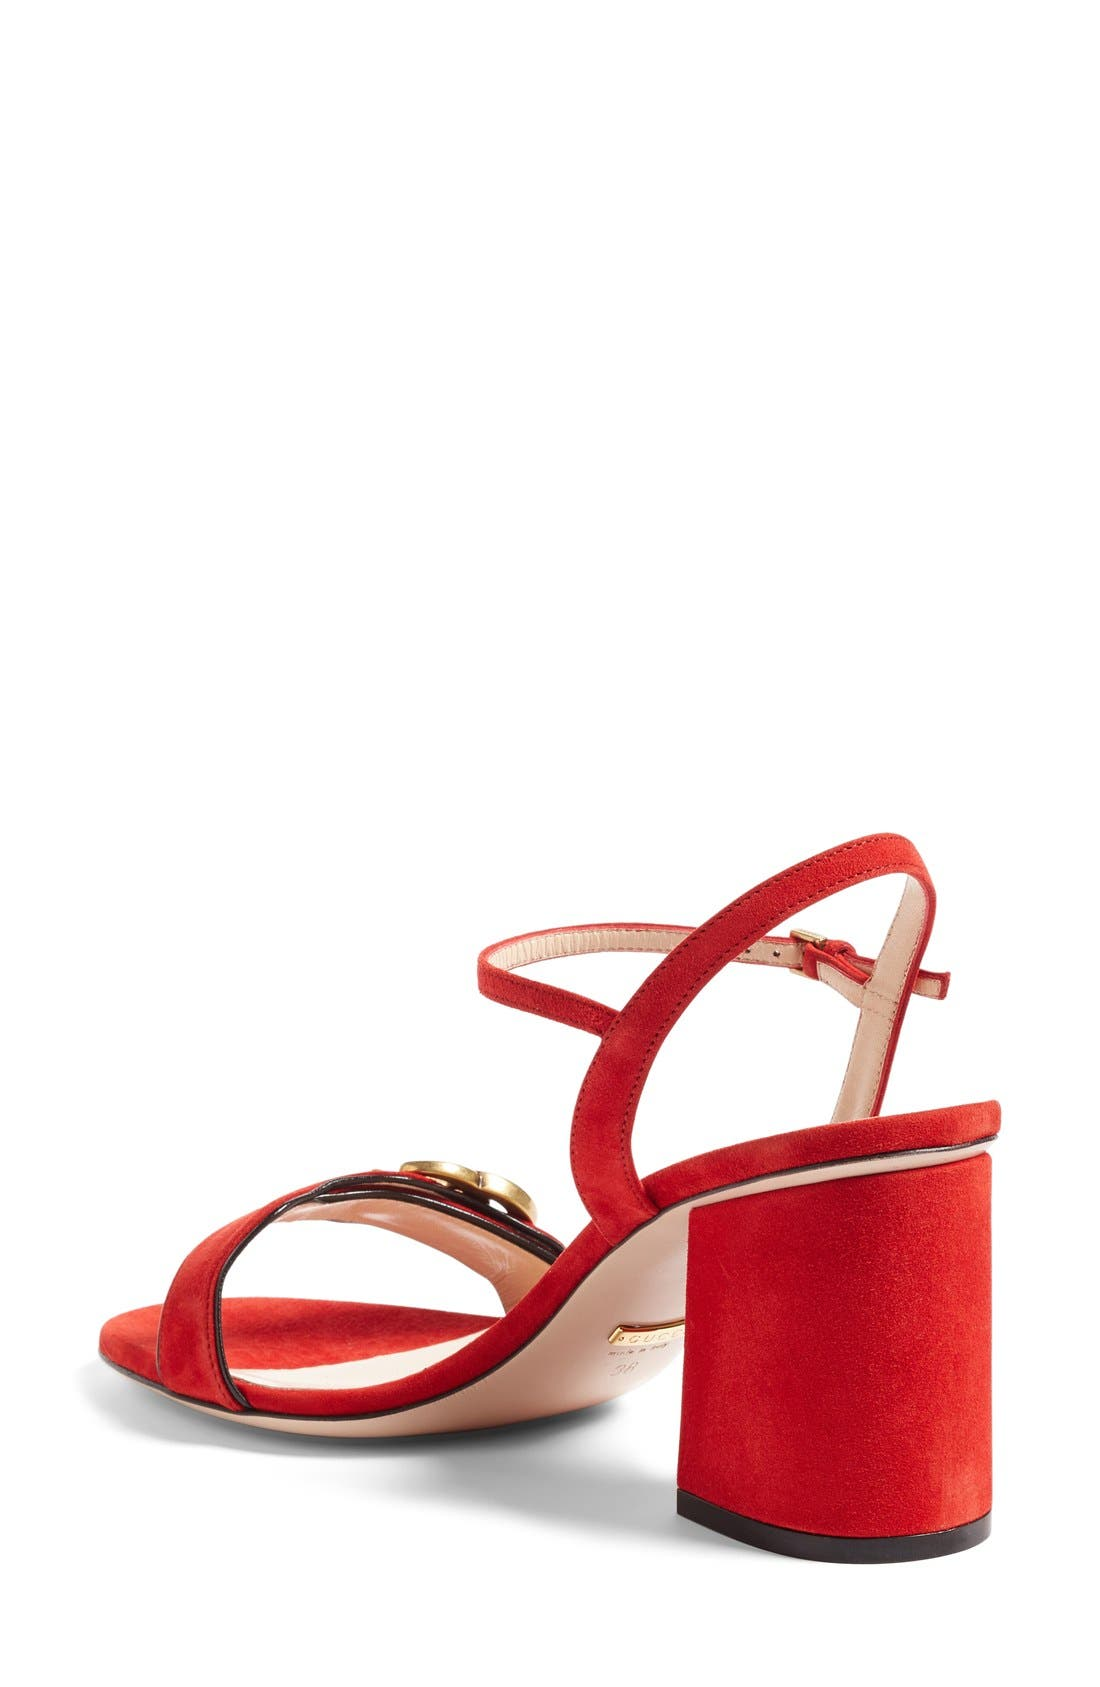 GG Marmont Sandal,                             Alternate thumbnail 2, color,                             Red Suede